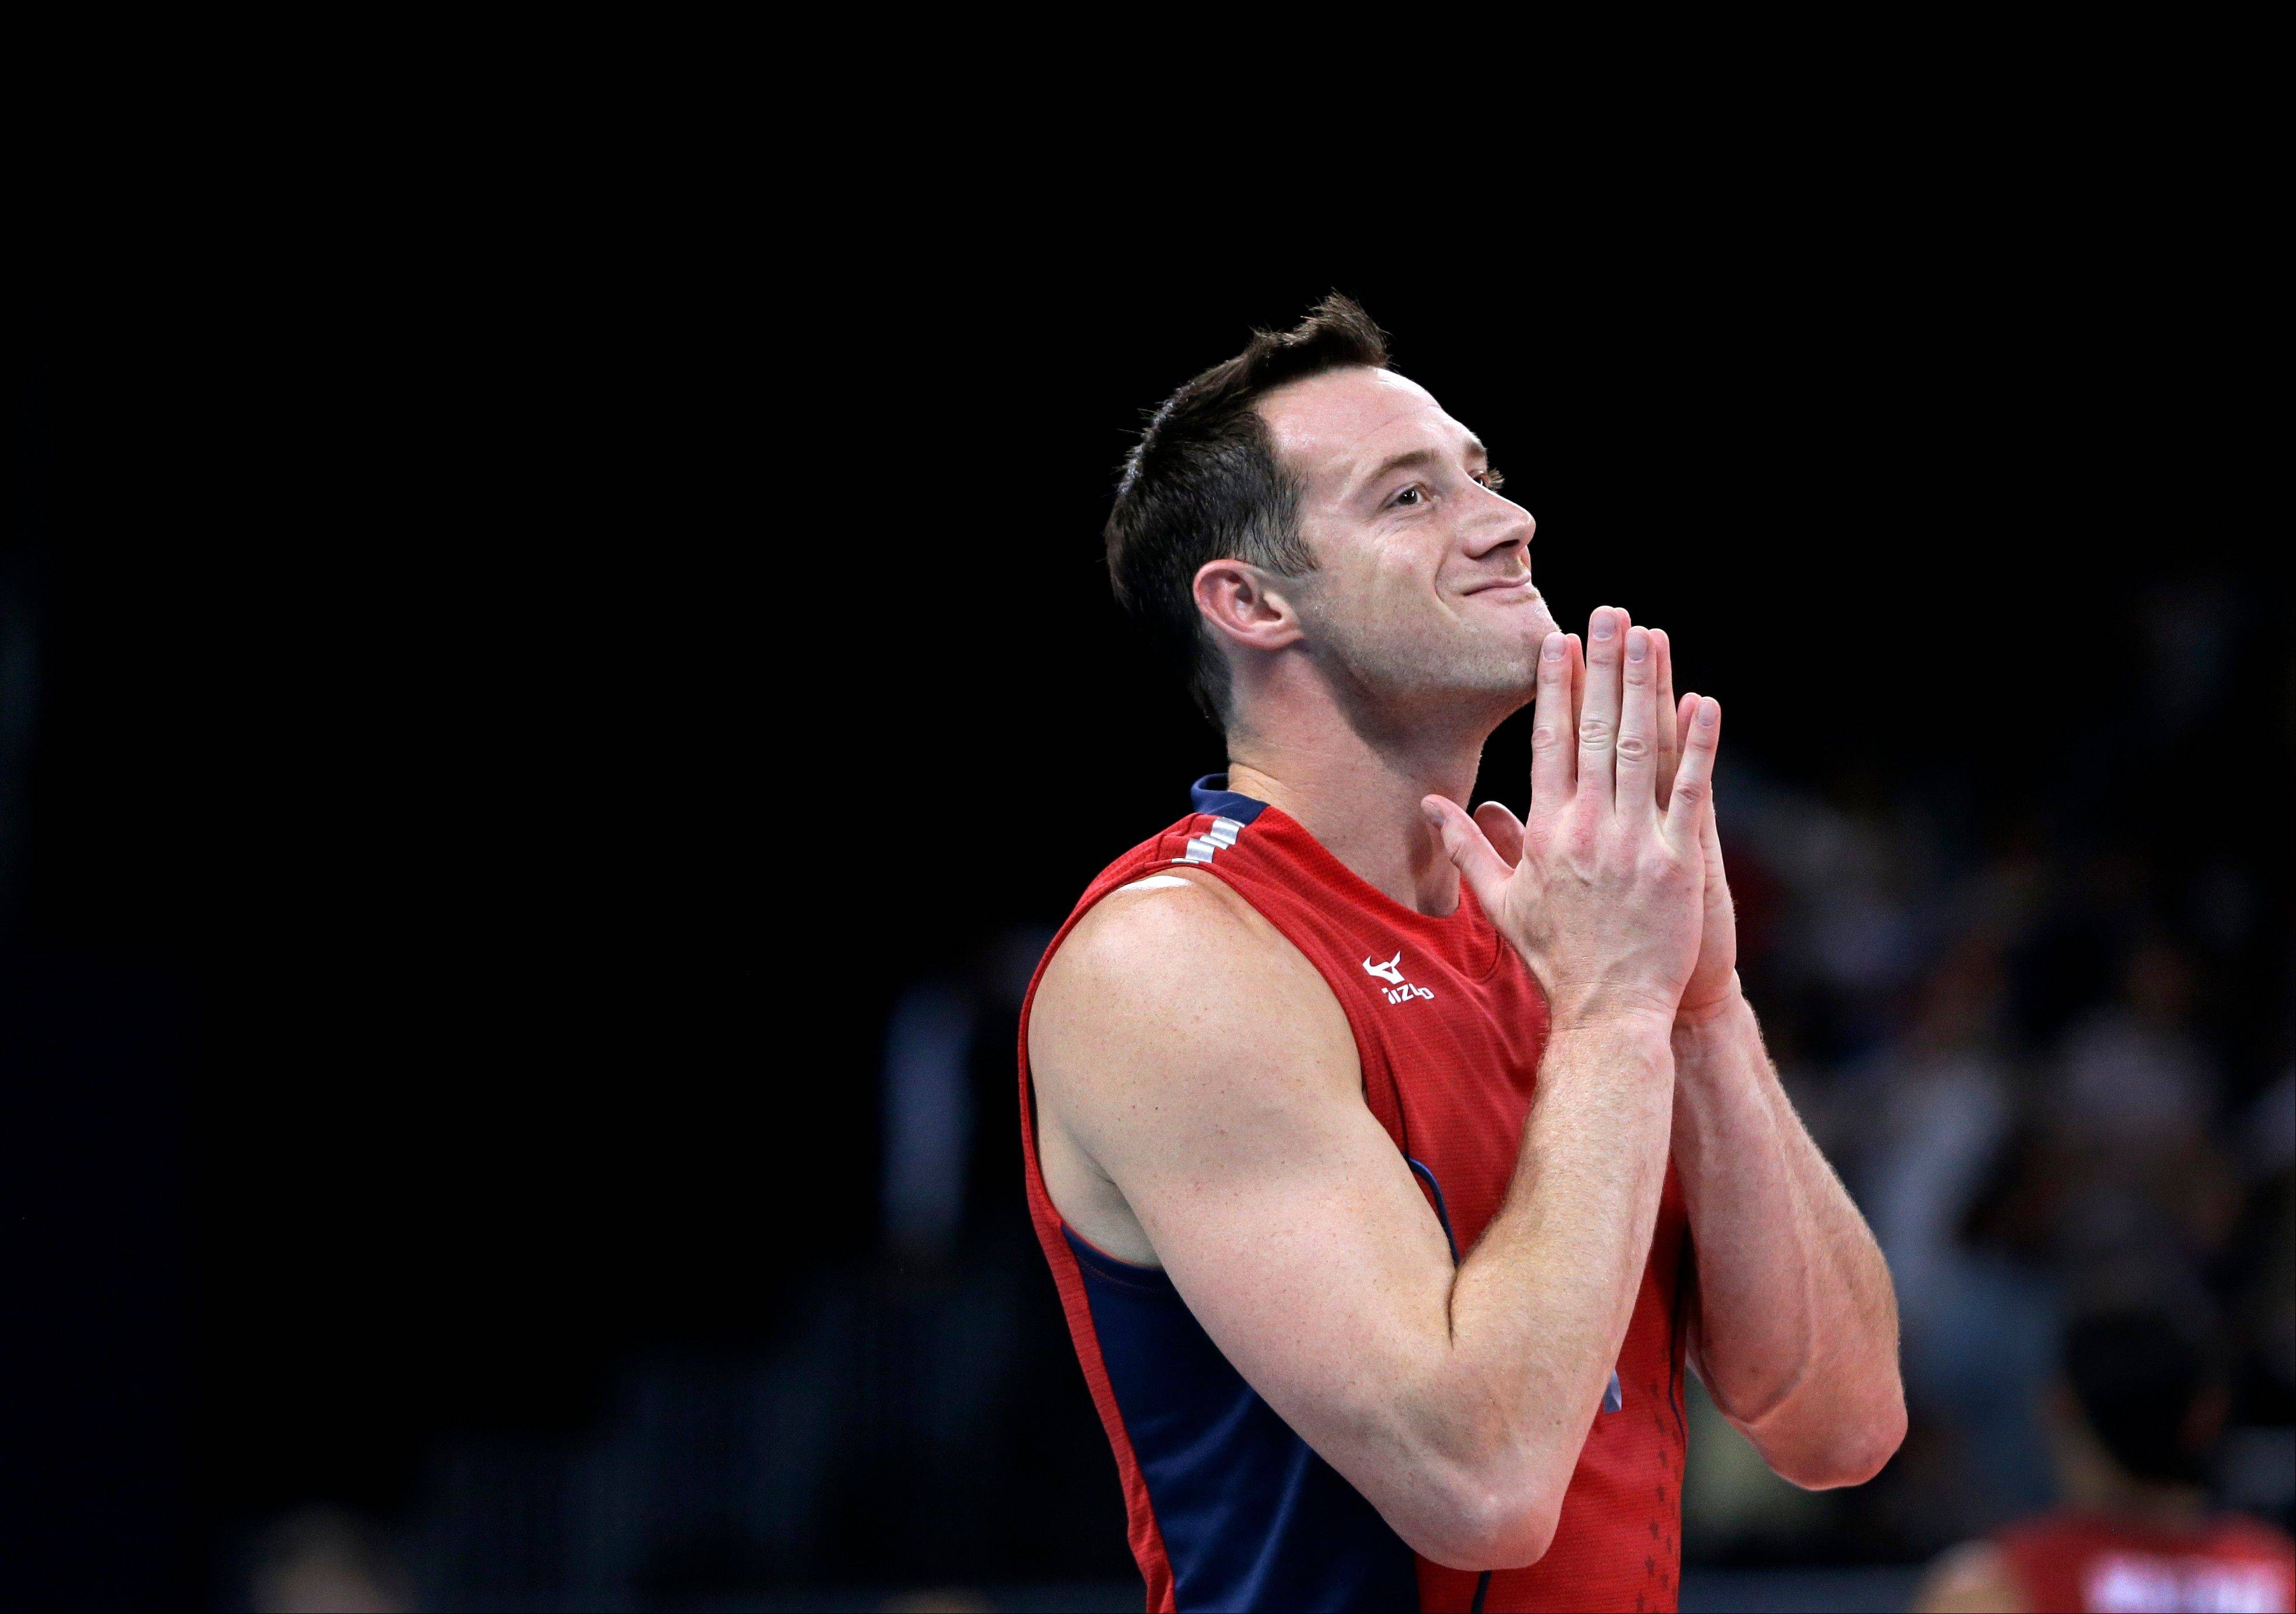 The United States' David Lee reacts Saturday following his team's defeat by Russia in a men's preliminary volleyball match at the 2012 Summer Olympics.